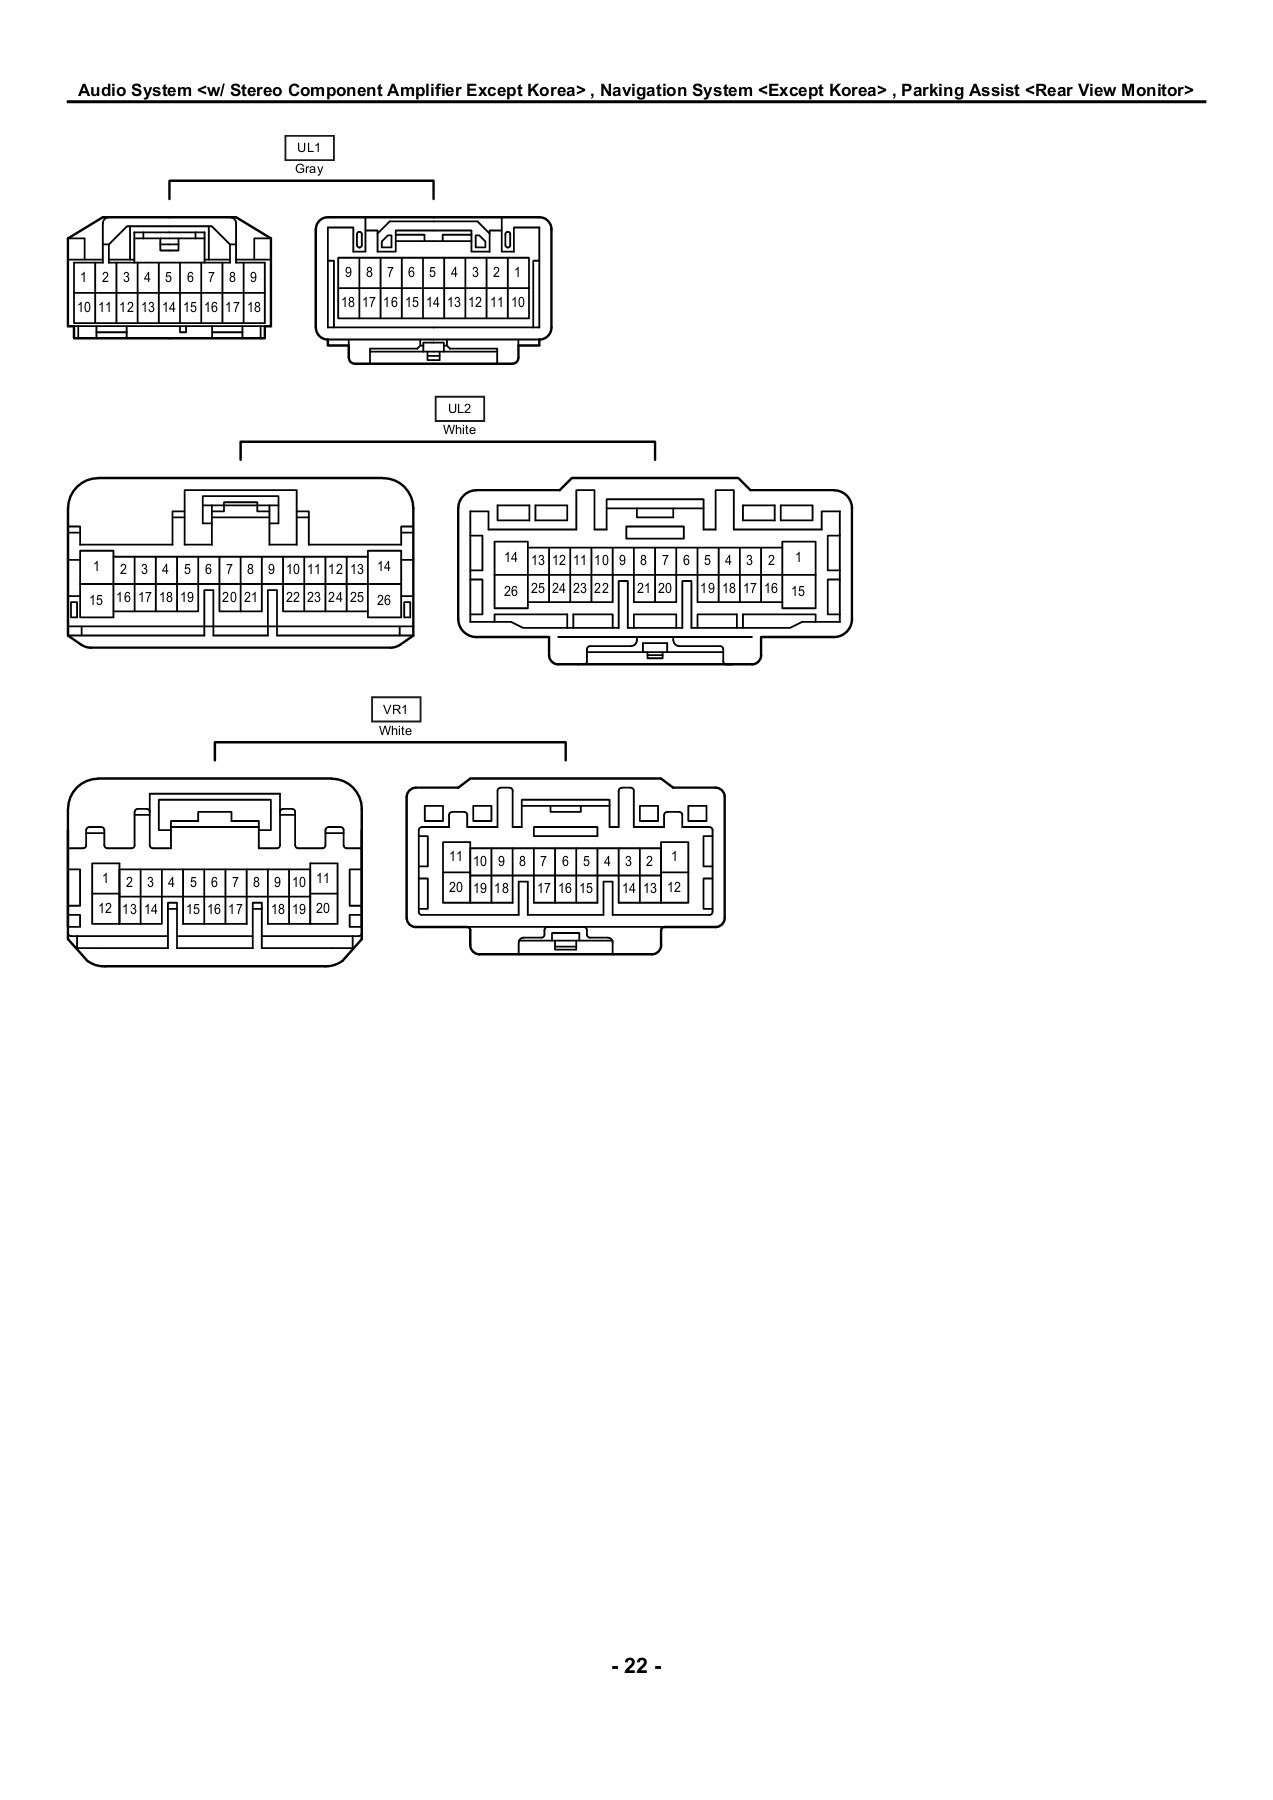 medium resolution of toyota prius 2010 electrical wiring diagrams pages 51 100 text version fliphtml5